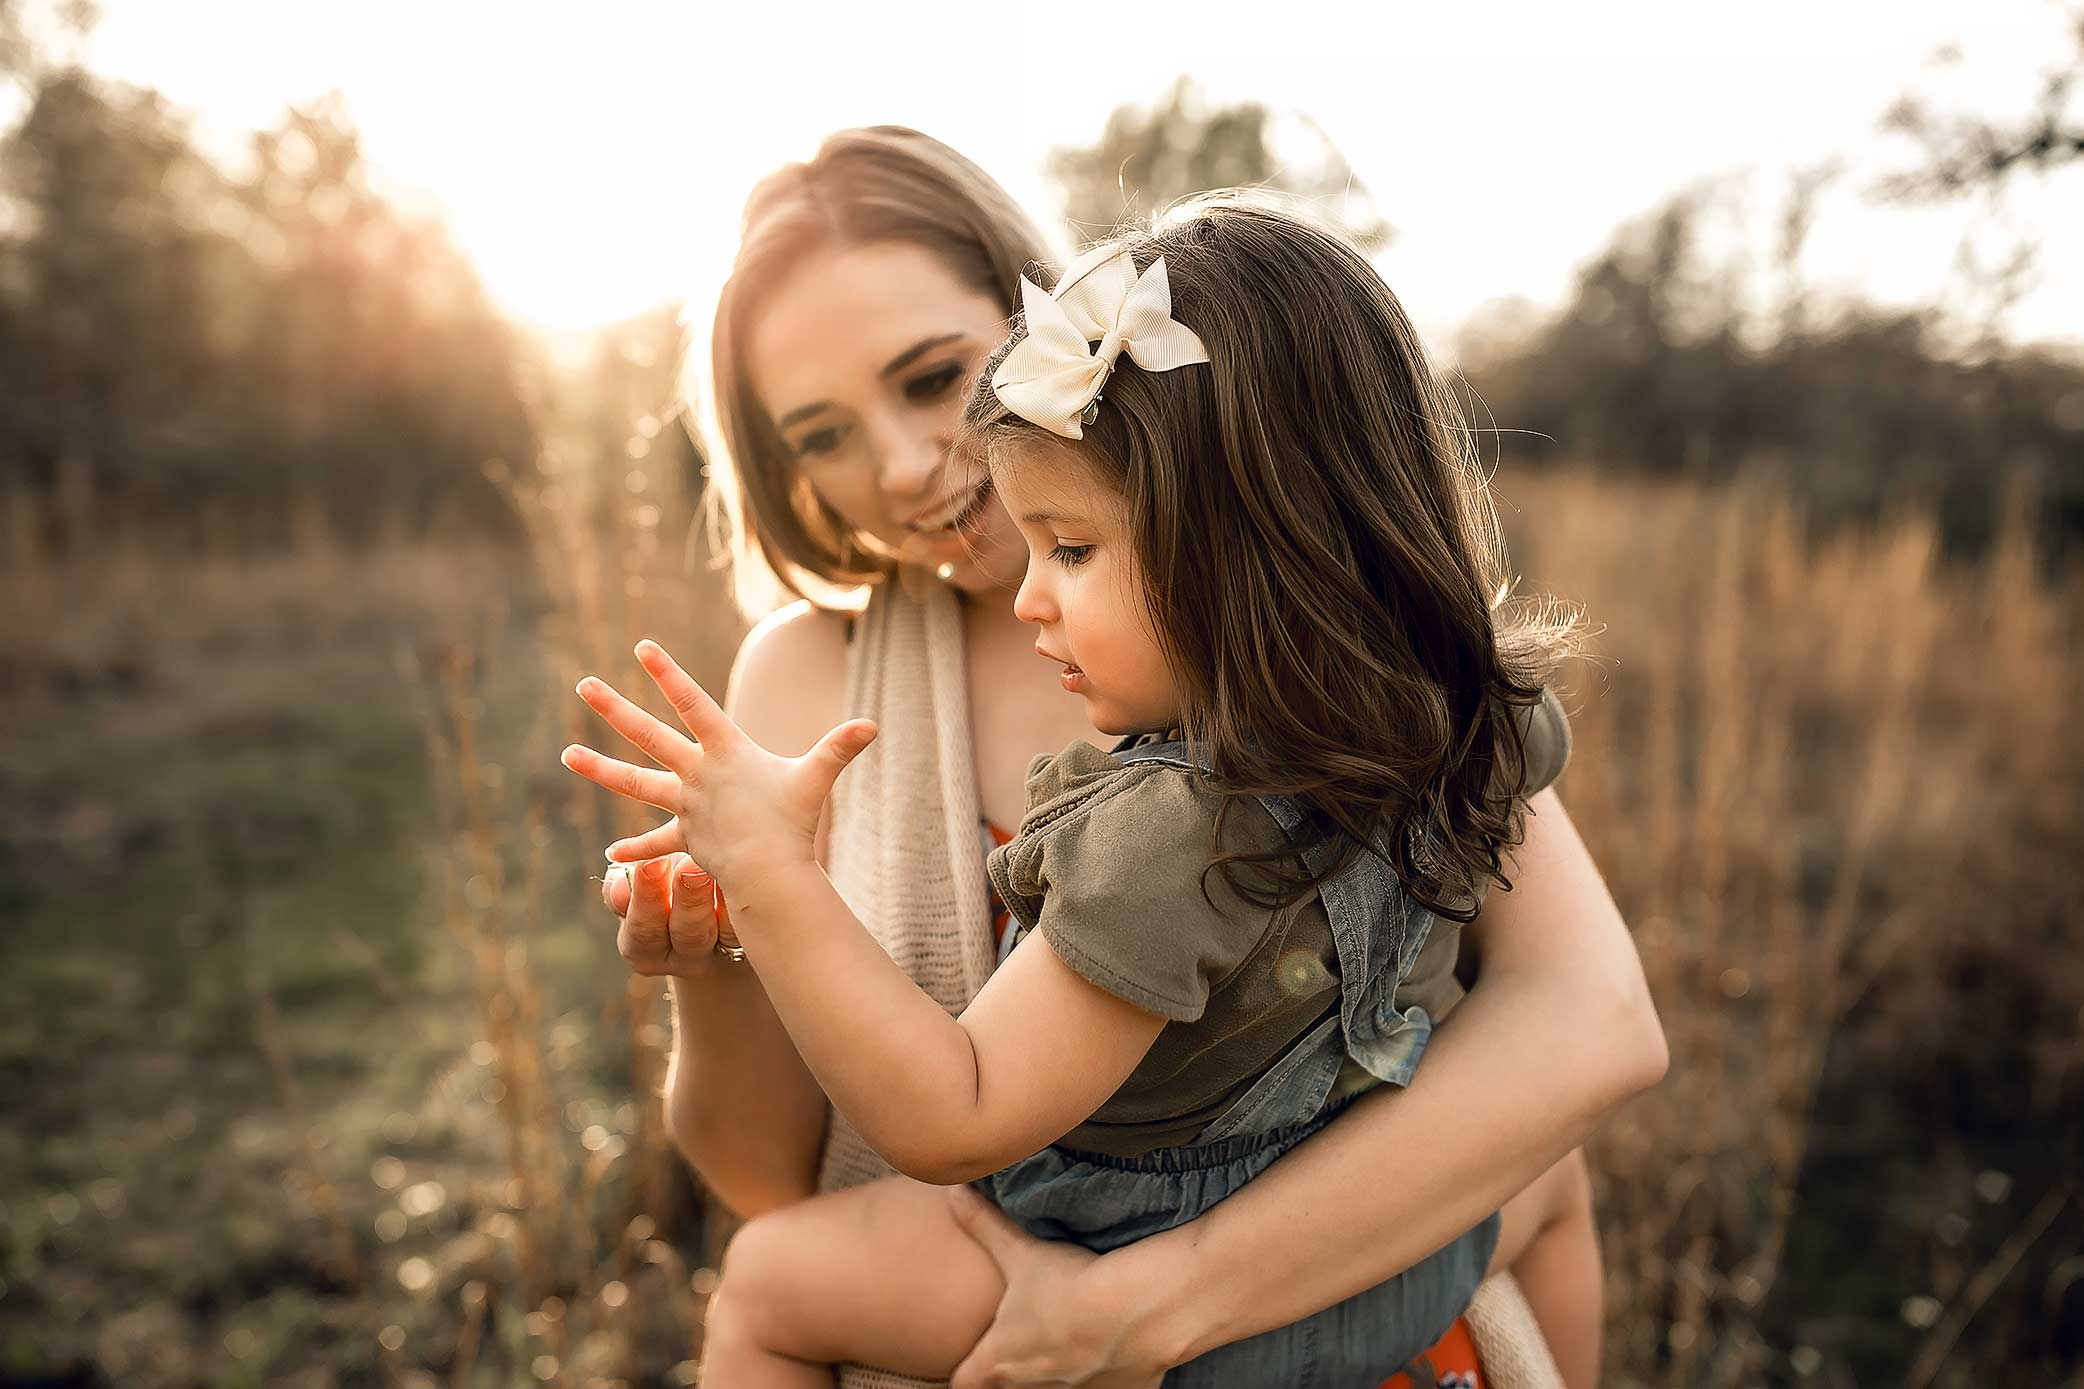 shelby-schiller-photography-sunset-family-pictures-spring-2019-21.jpg